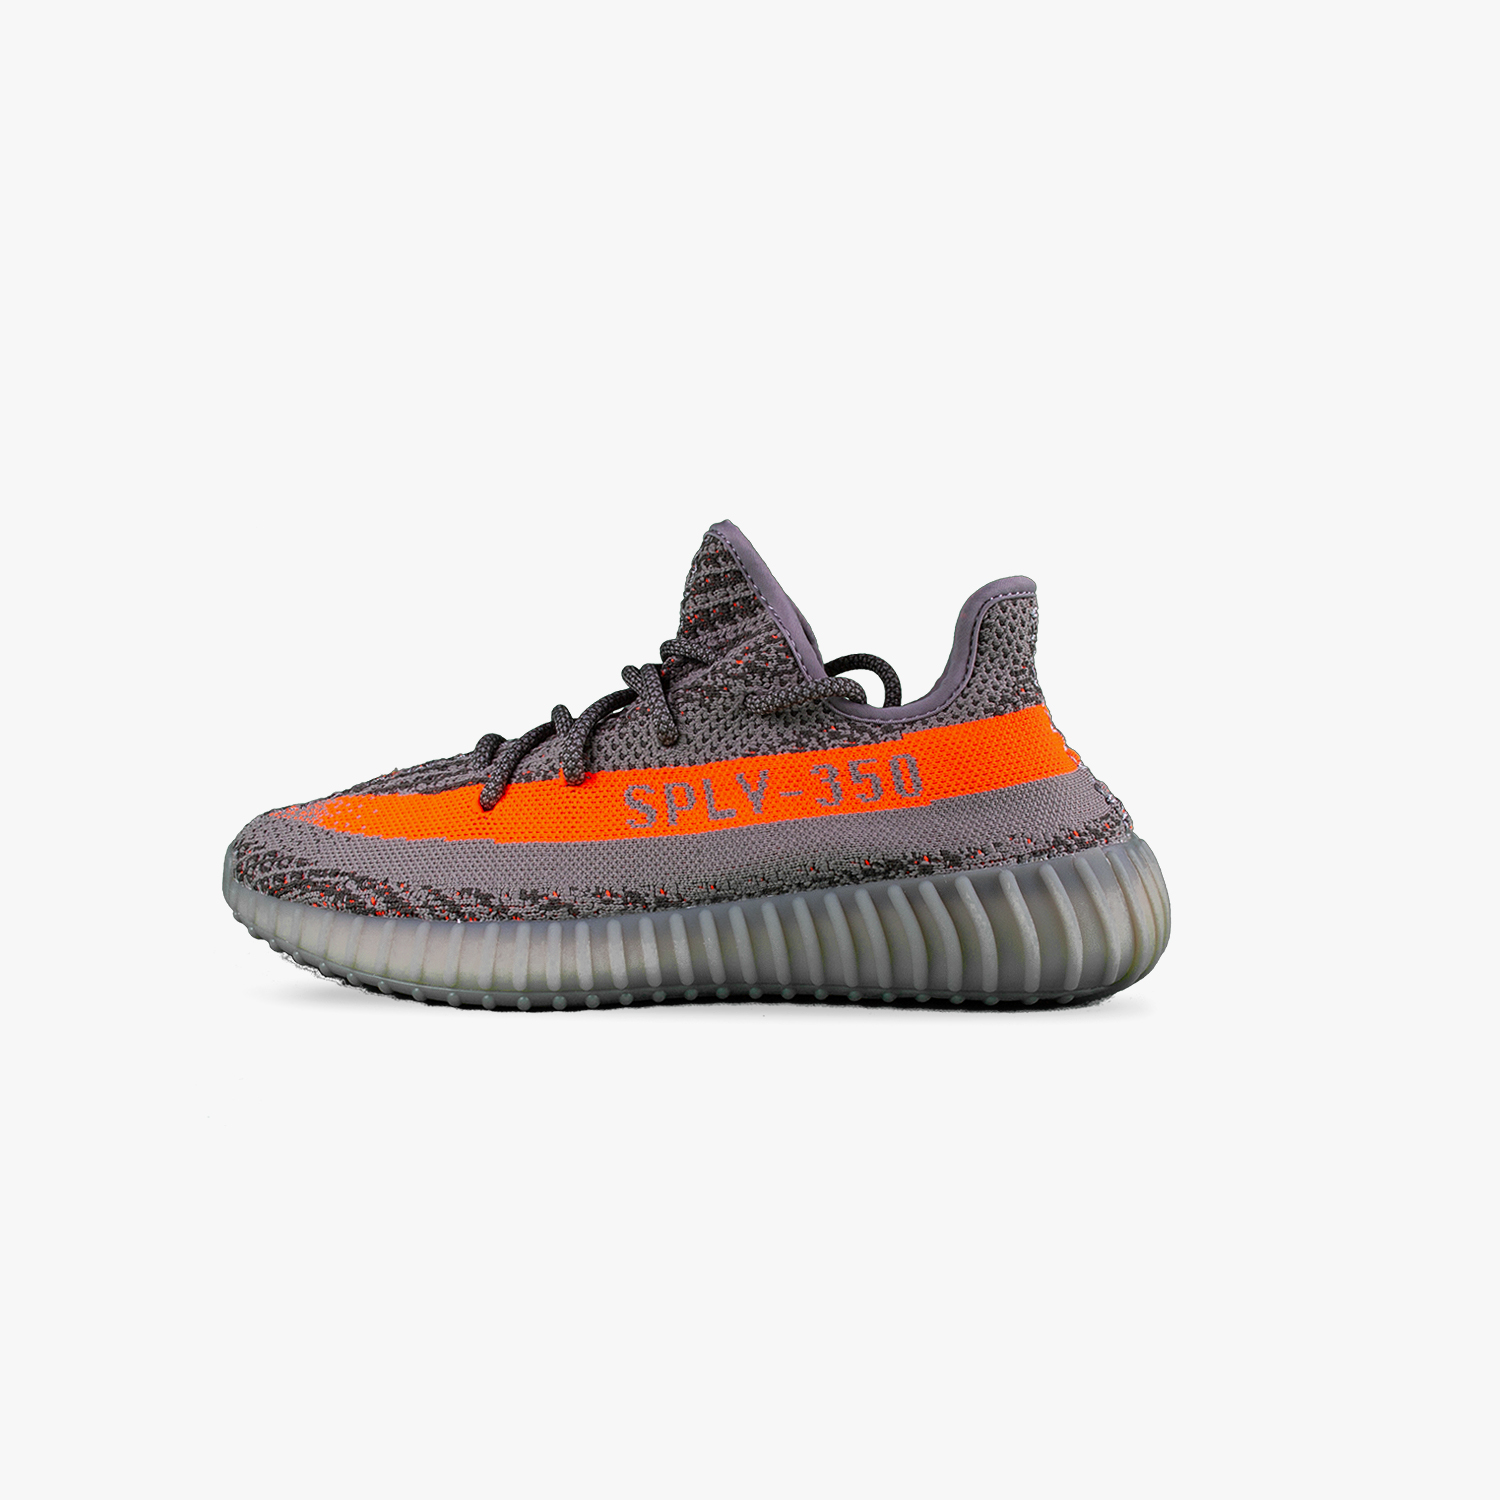 separation shoes 4b76d 77404 Adidas Yeezy Boost 350 V2